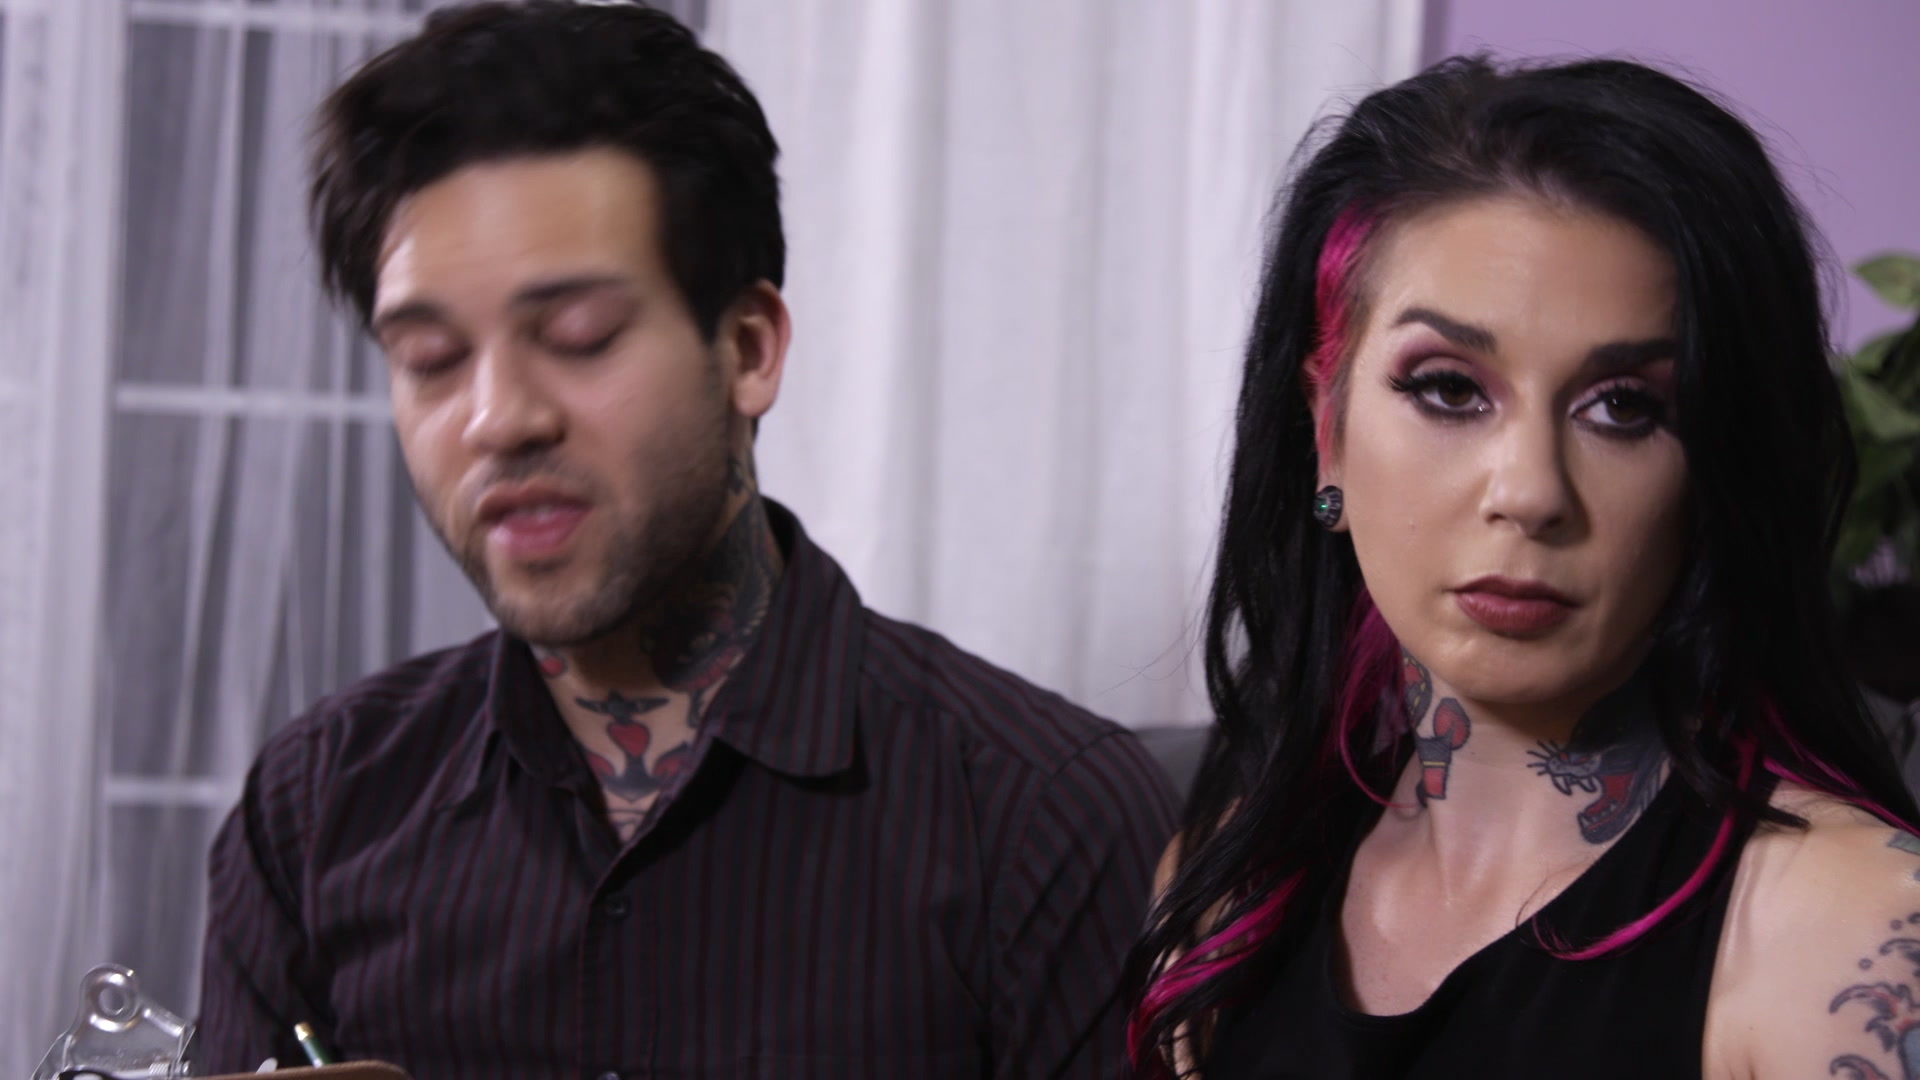 Scene with Joanna Angel, Small Hands and Giselle Palmer - image 2 out of 20